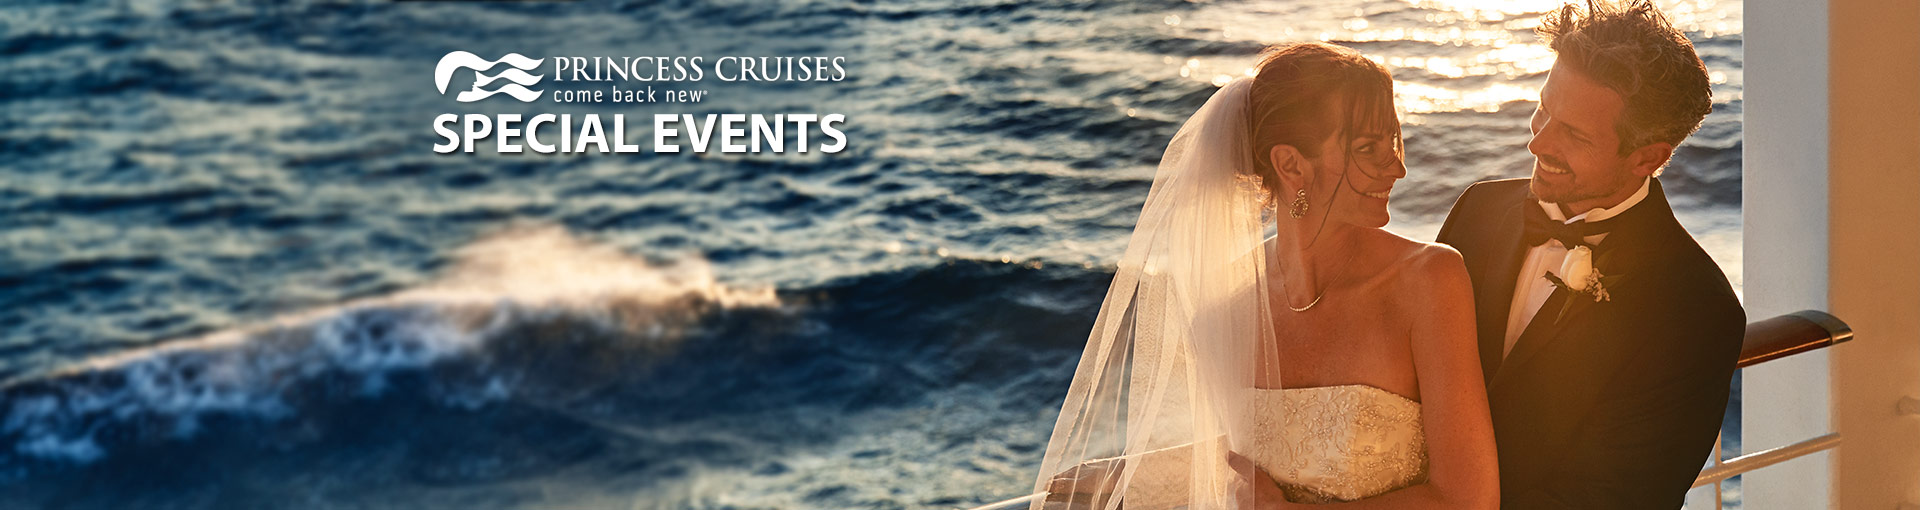 Princess Cruises Special Events